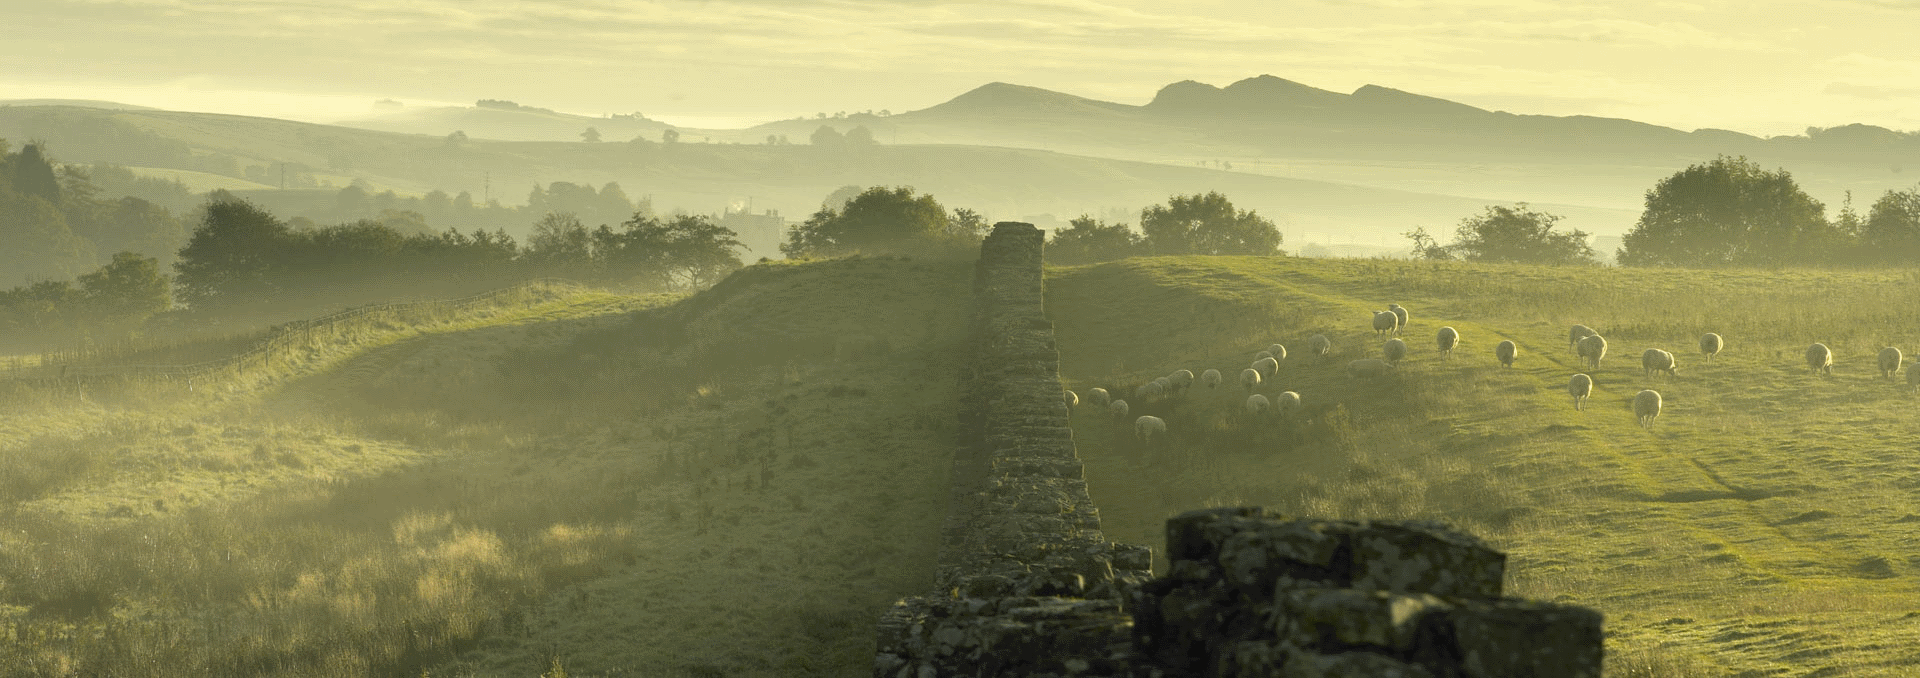 Hadrians Wall in Allerdale